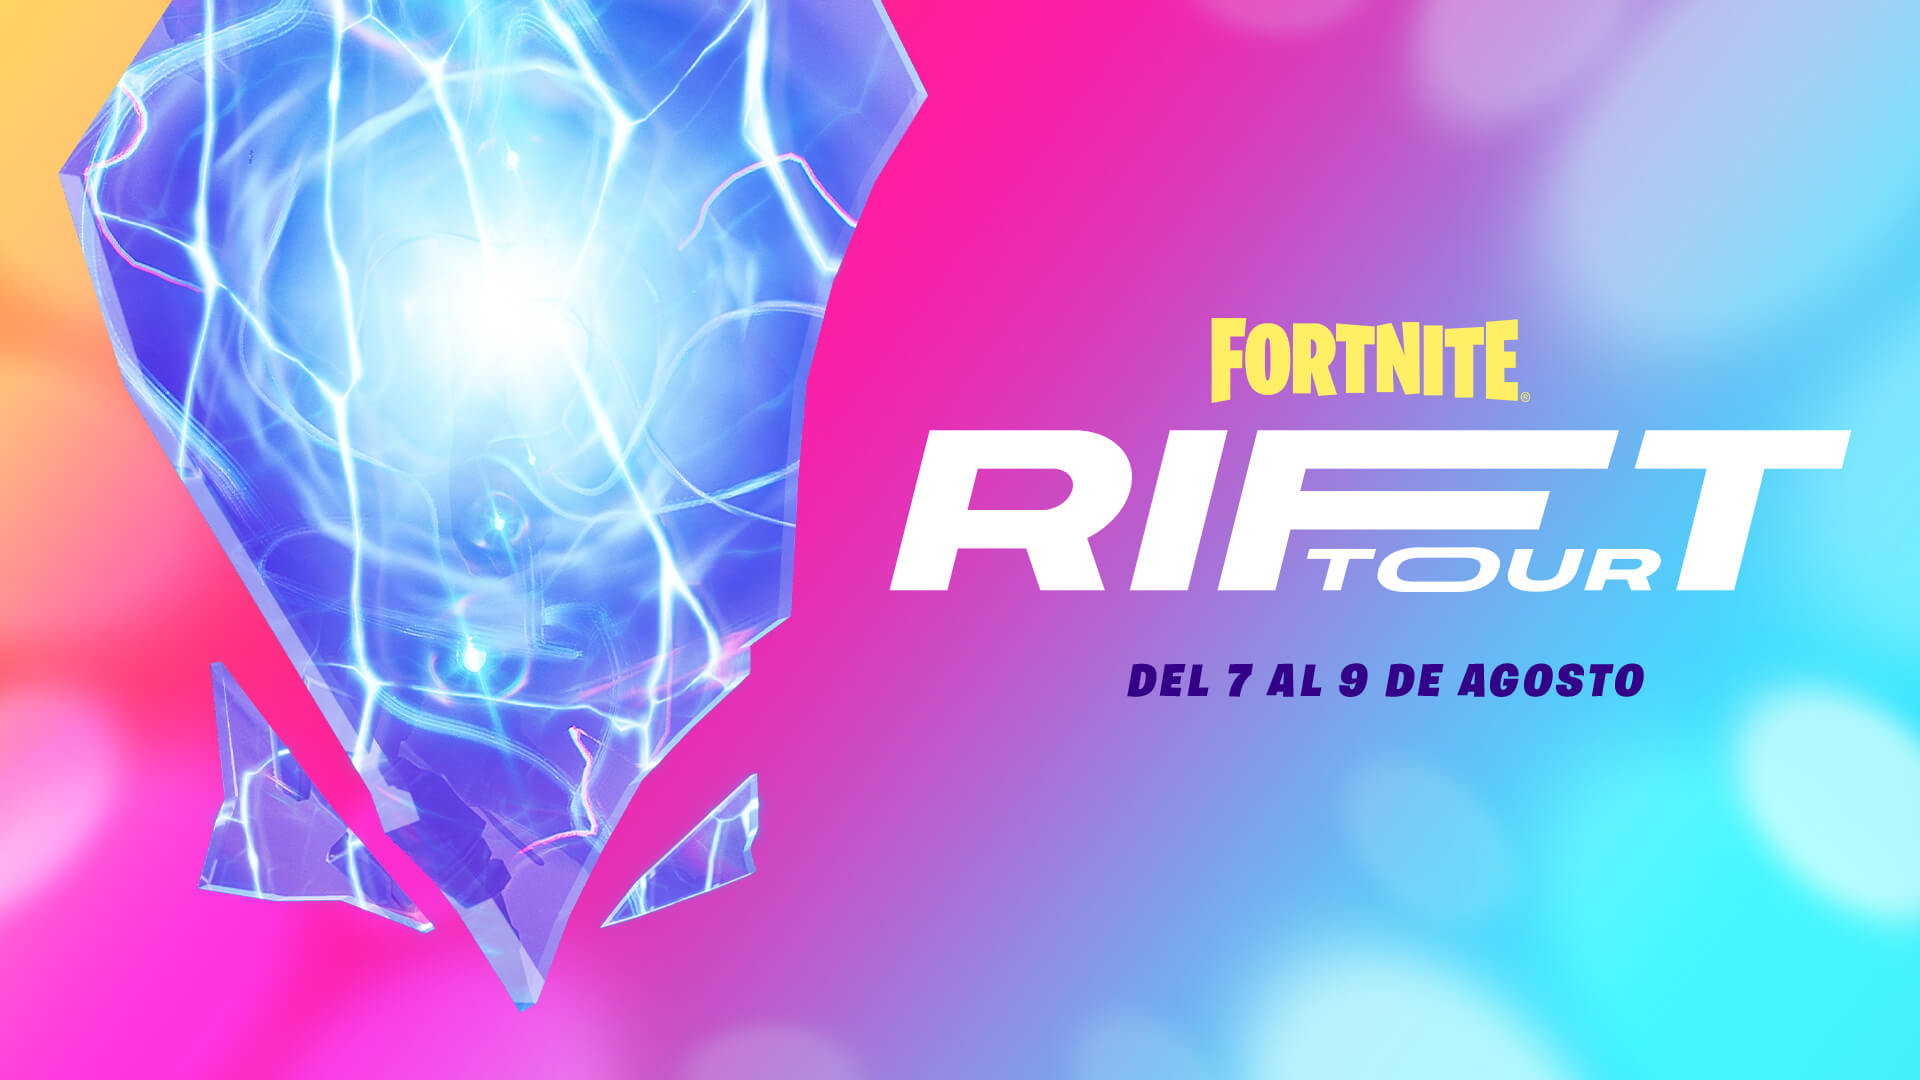 Fortnite promises a record superstar at its Rift Tour event – this is all we know